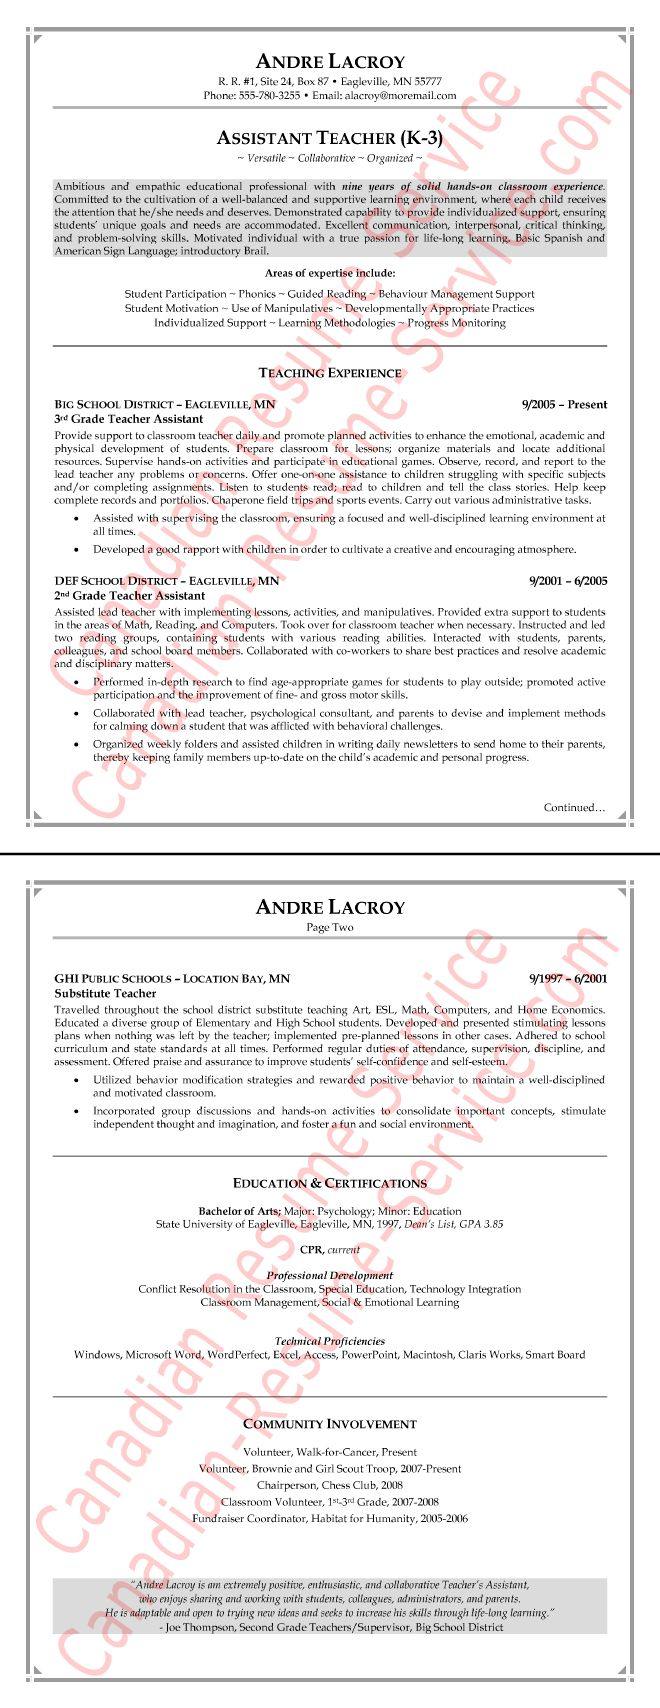 Teaching Assistant Resume Example - Sample